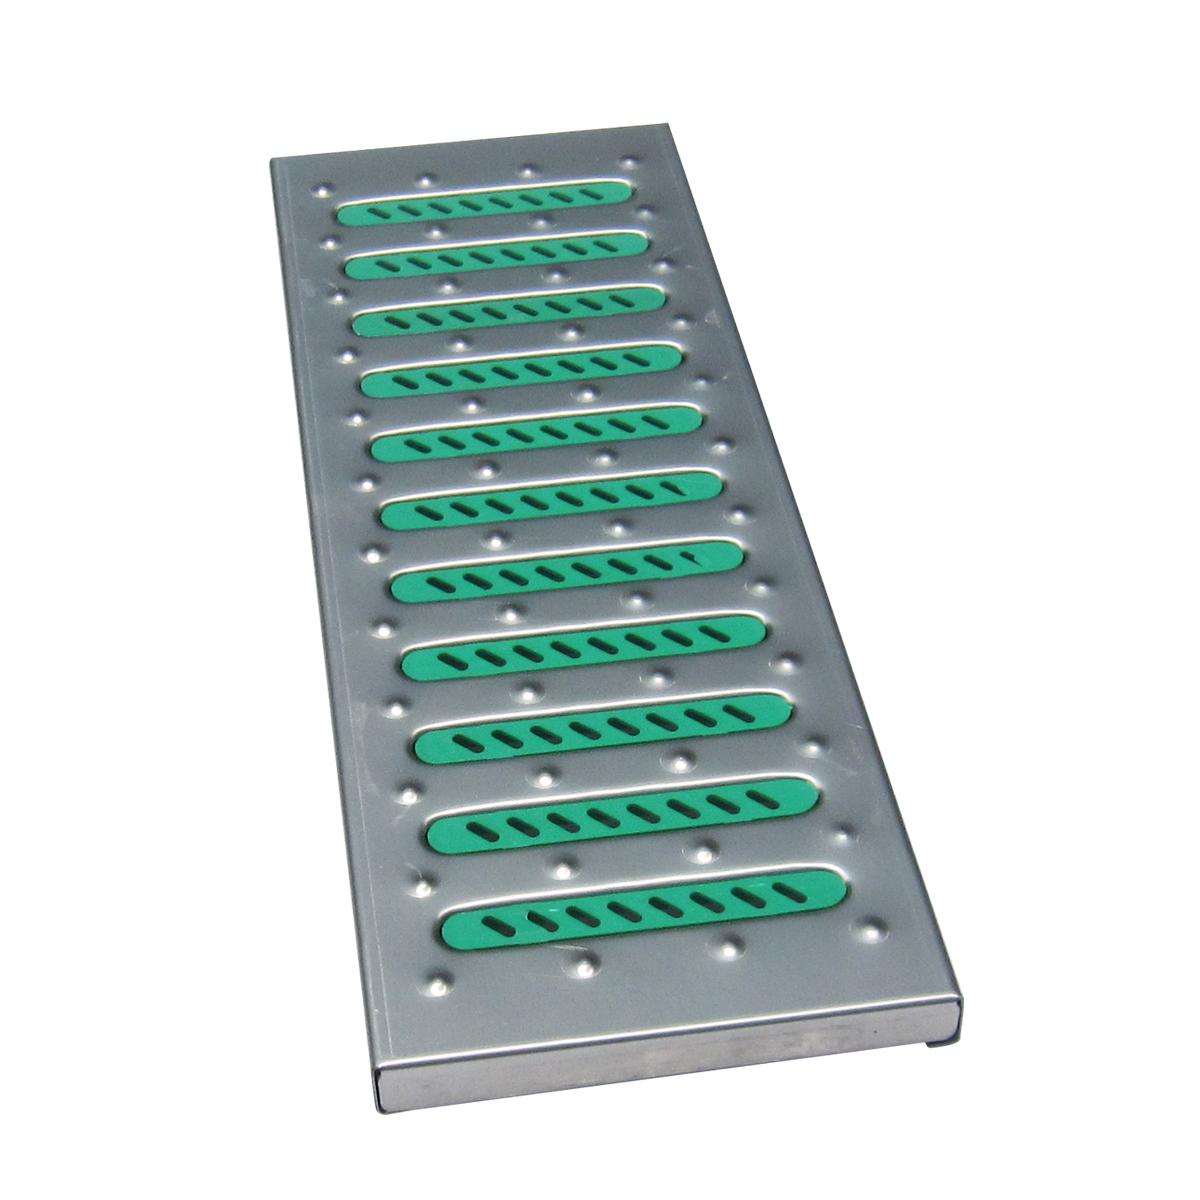 F200 stainless steel drain cover